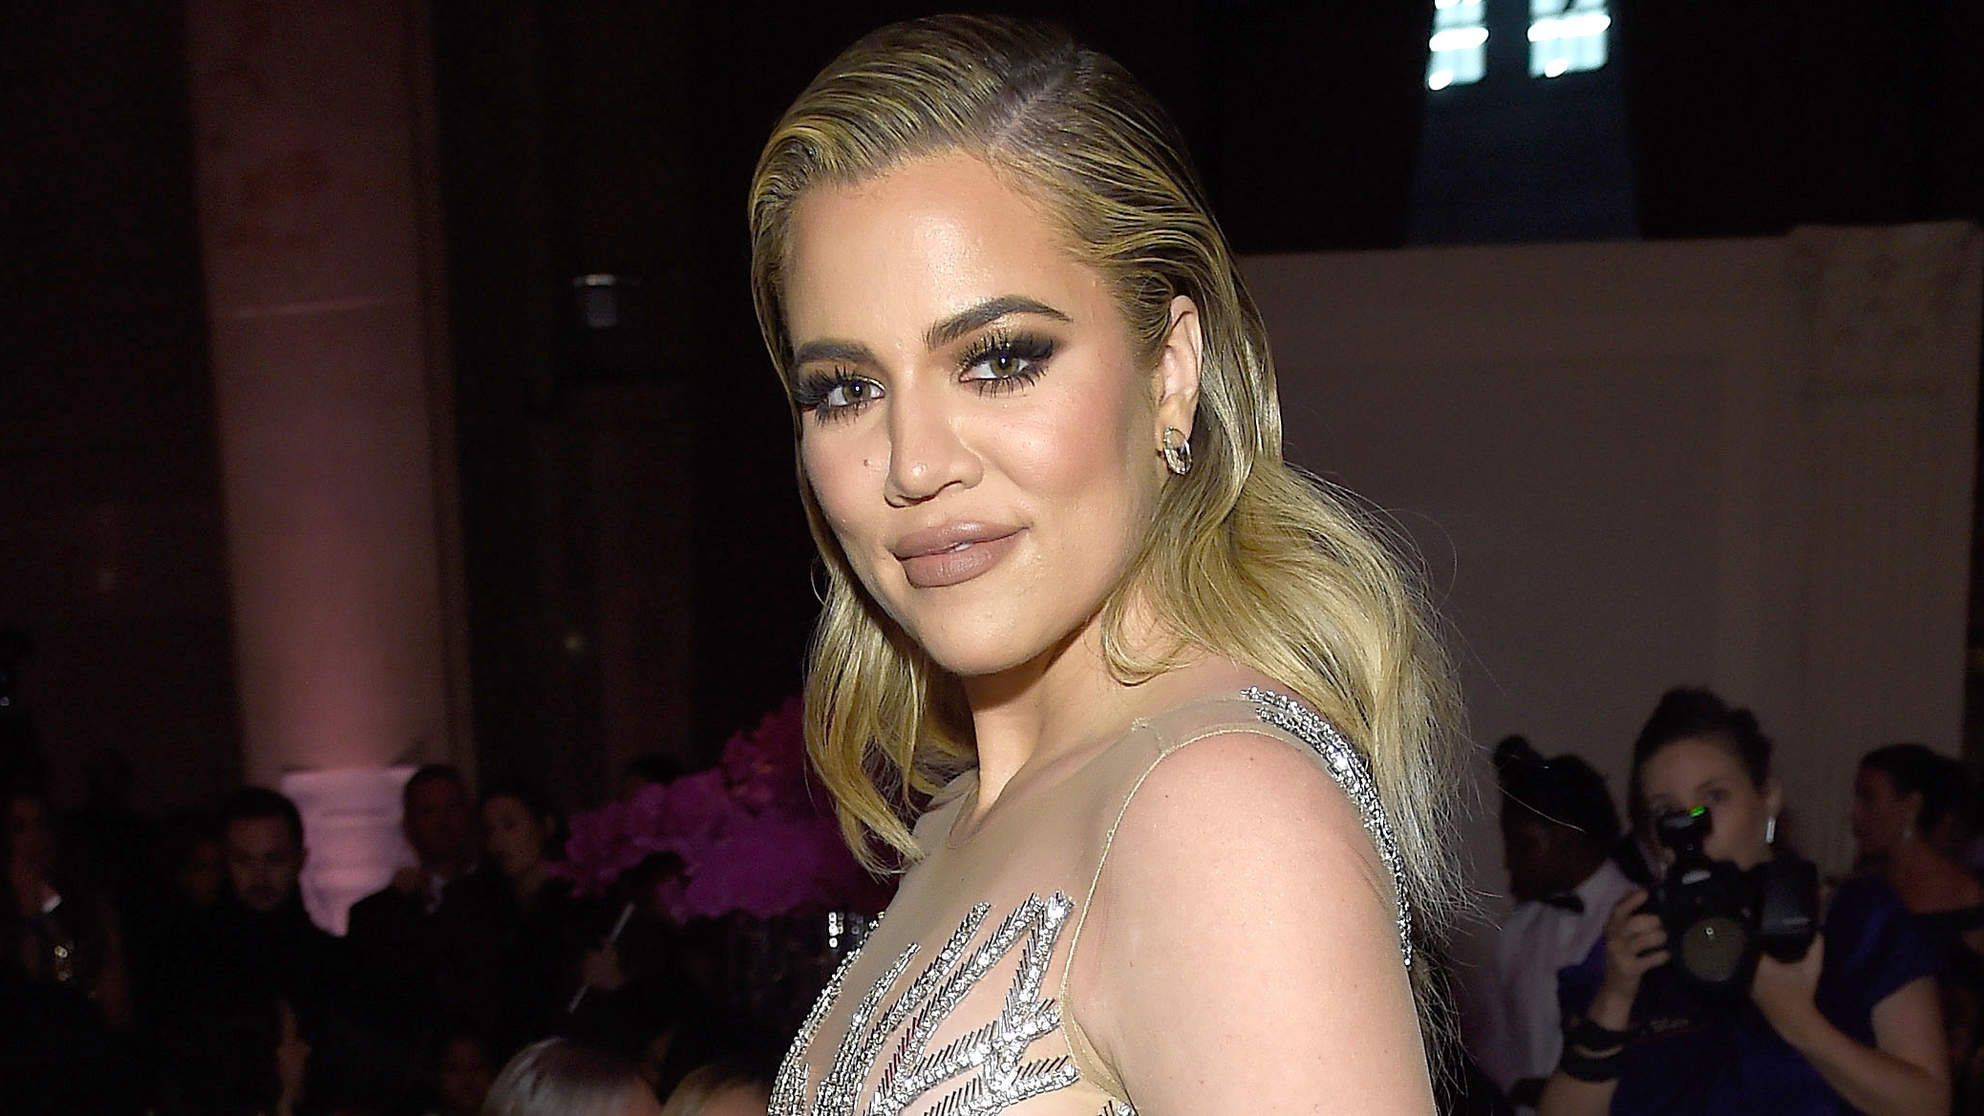 What to Know About the Fertility Test That Had Khloé Kardashian So Worried